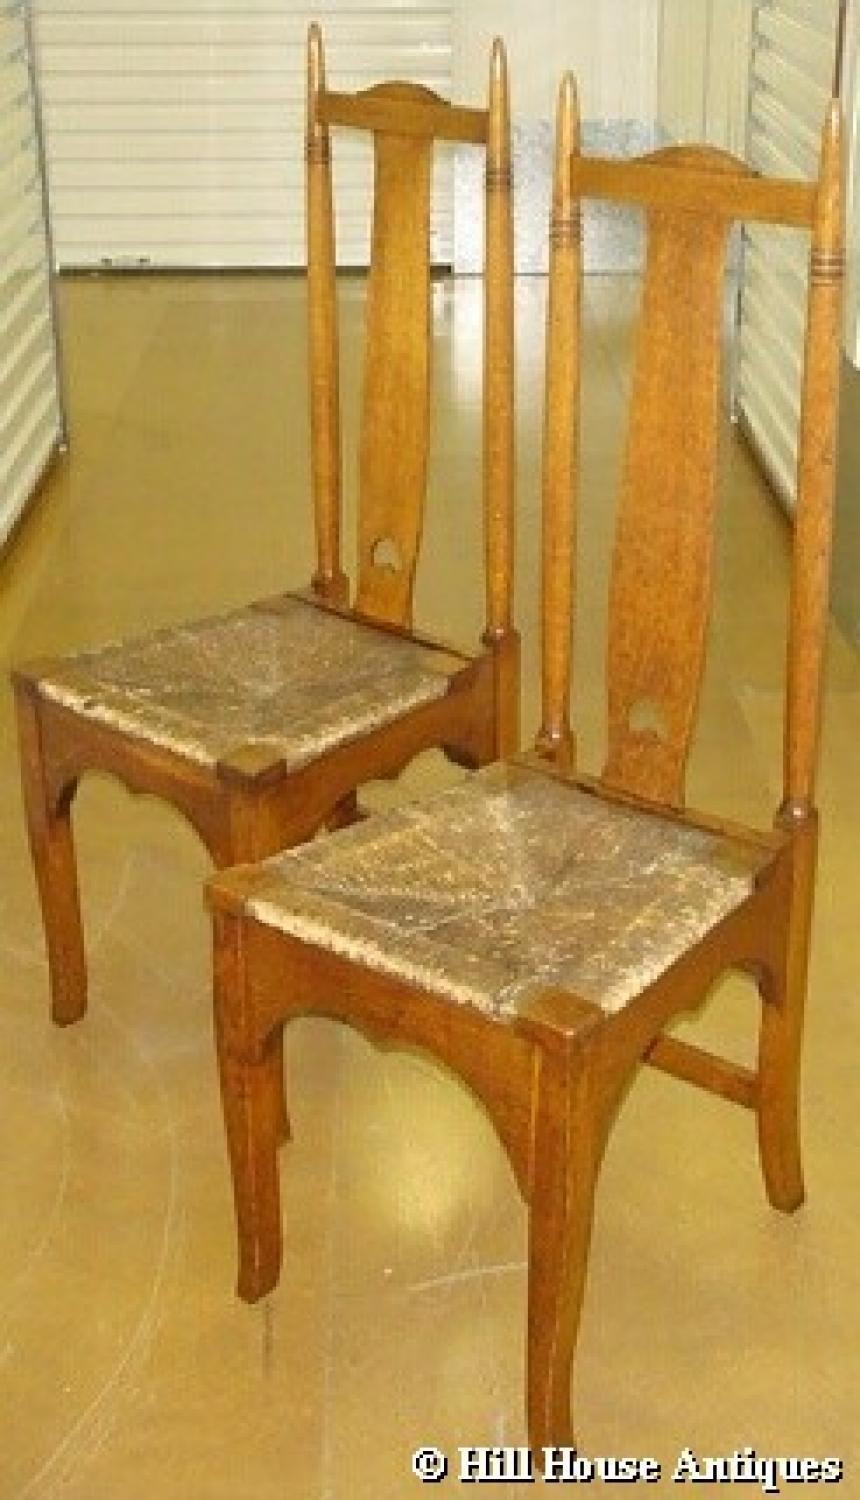 wylie  u0026 lochhead pair arts  u0026 crafts chairs in chairs